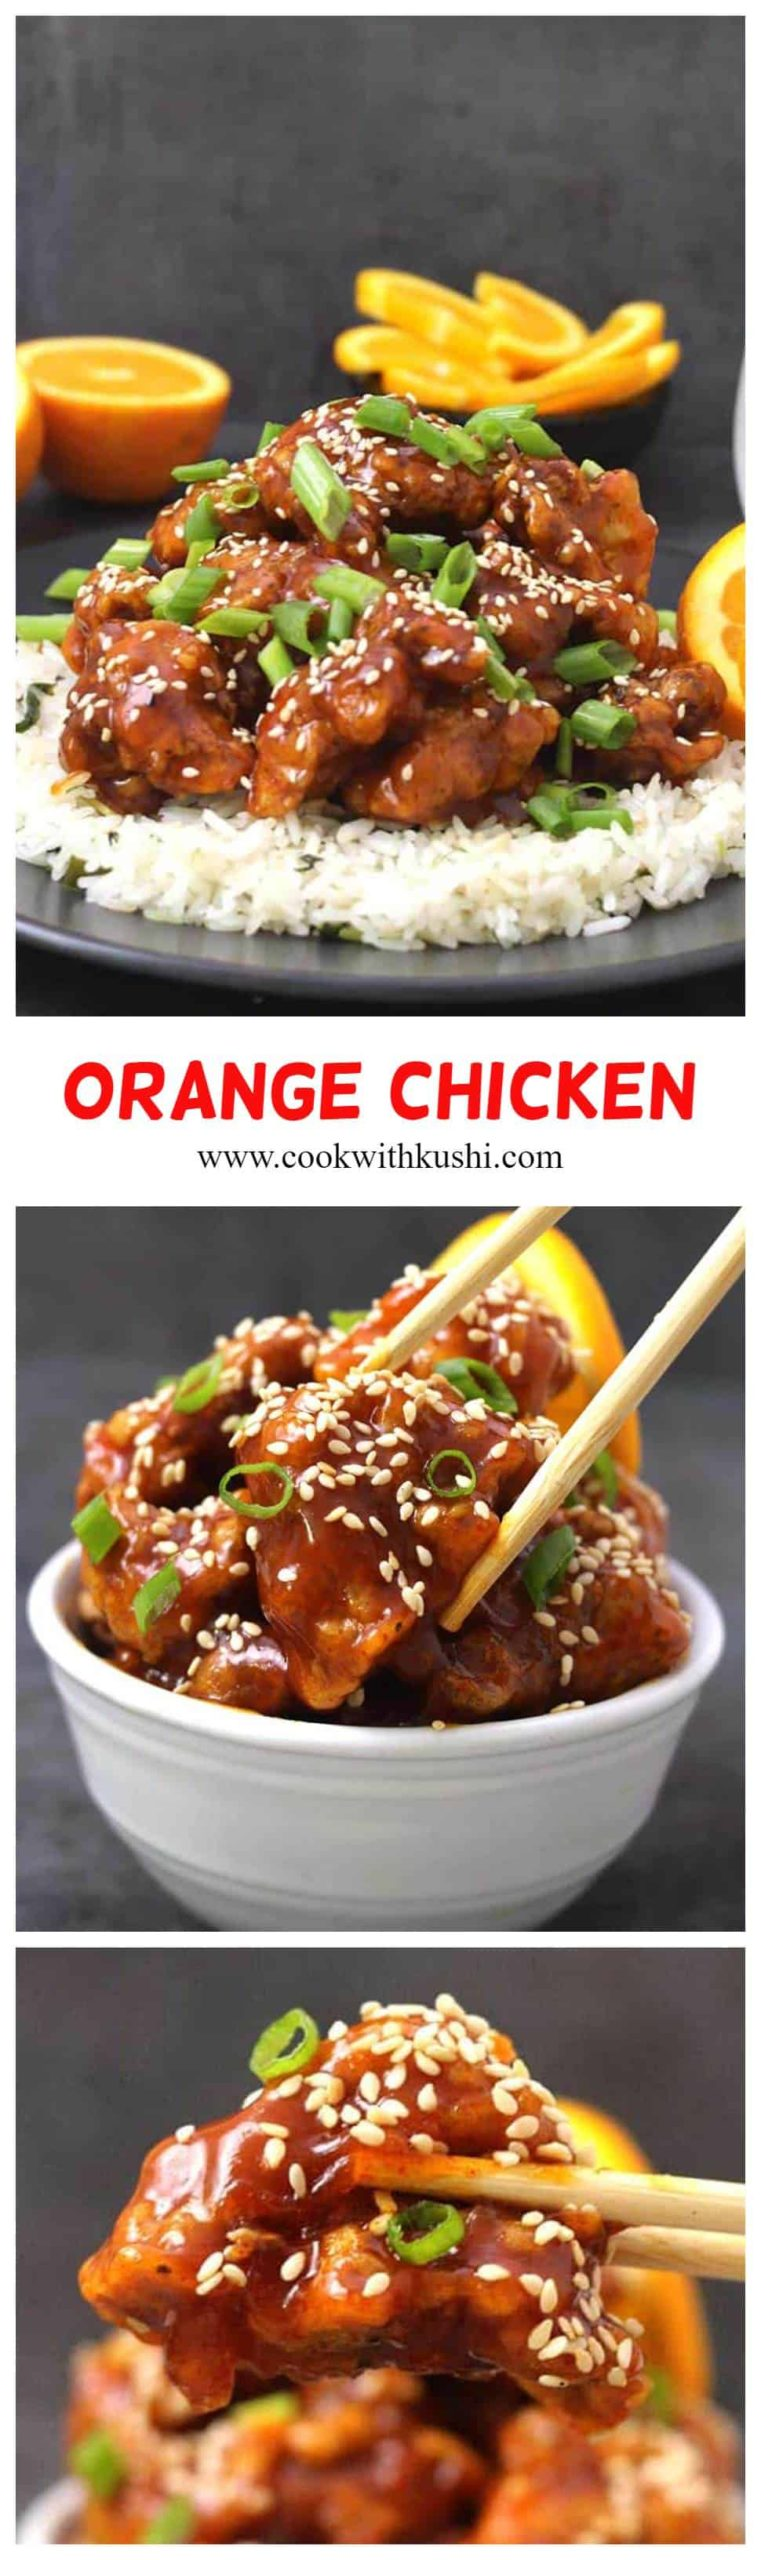 Orange Chicken - best and easy chicken side dish or appetizer for any dinner party. Crispy fried chicken thighs are tossed in flavorful and finger licking, homemade orange sauce. #orangechickensauce #crockpotorangechicken #ketoorangechicken #instantpotorangechicken #dinnerrecipes #chickendinnerideas